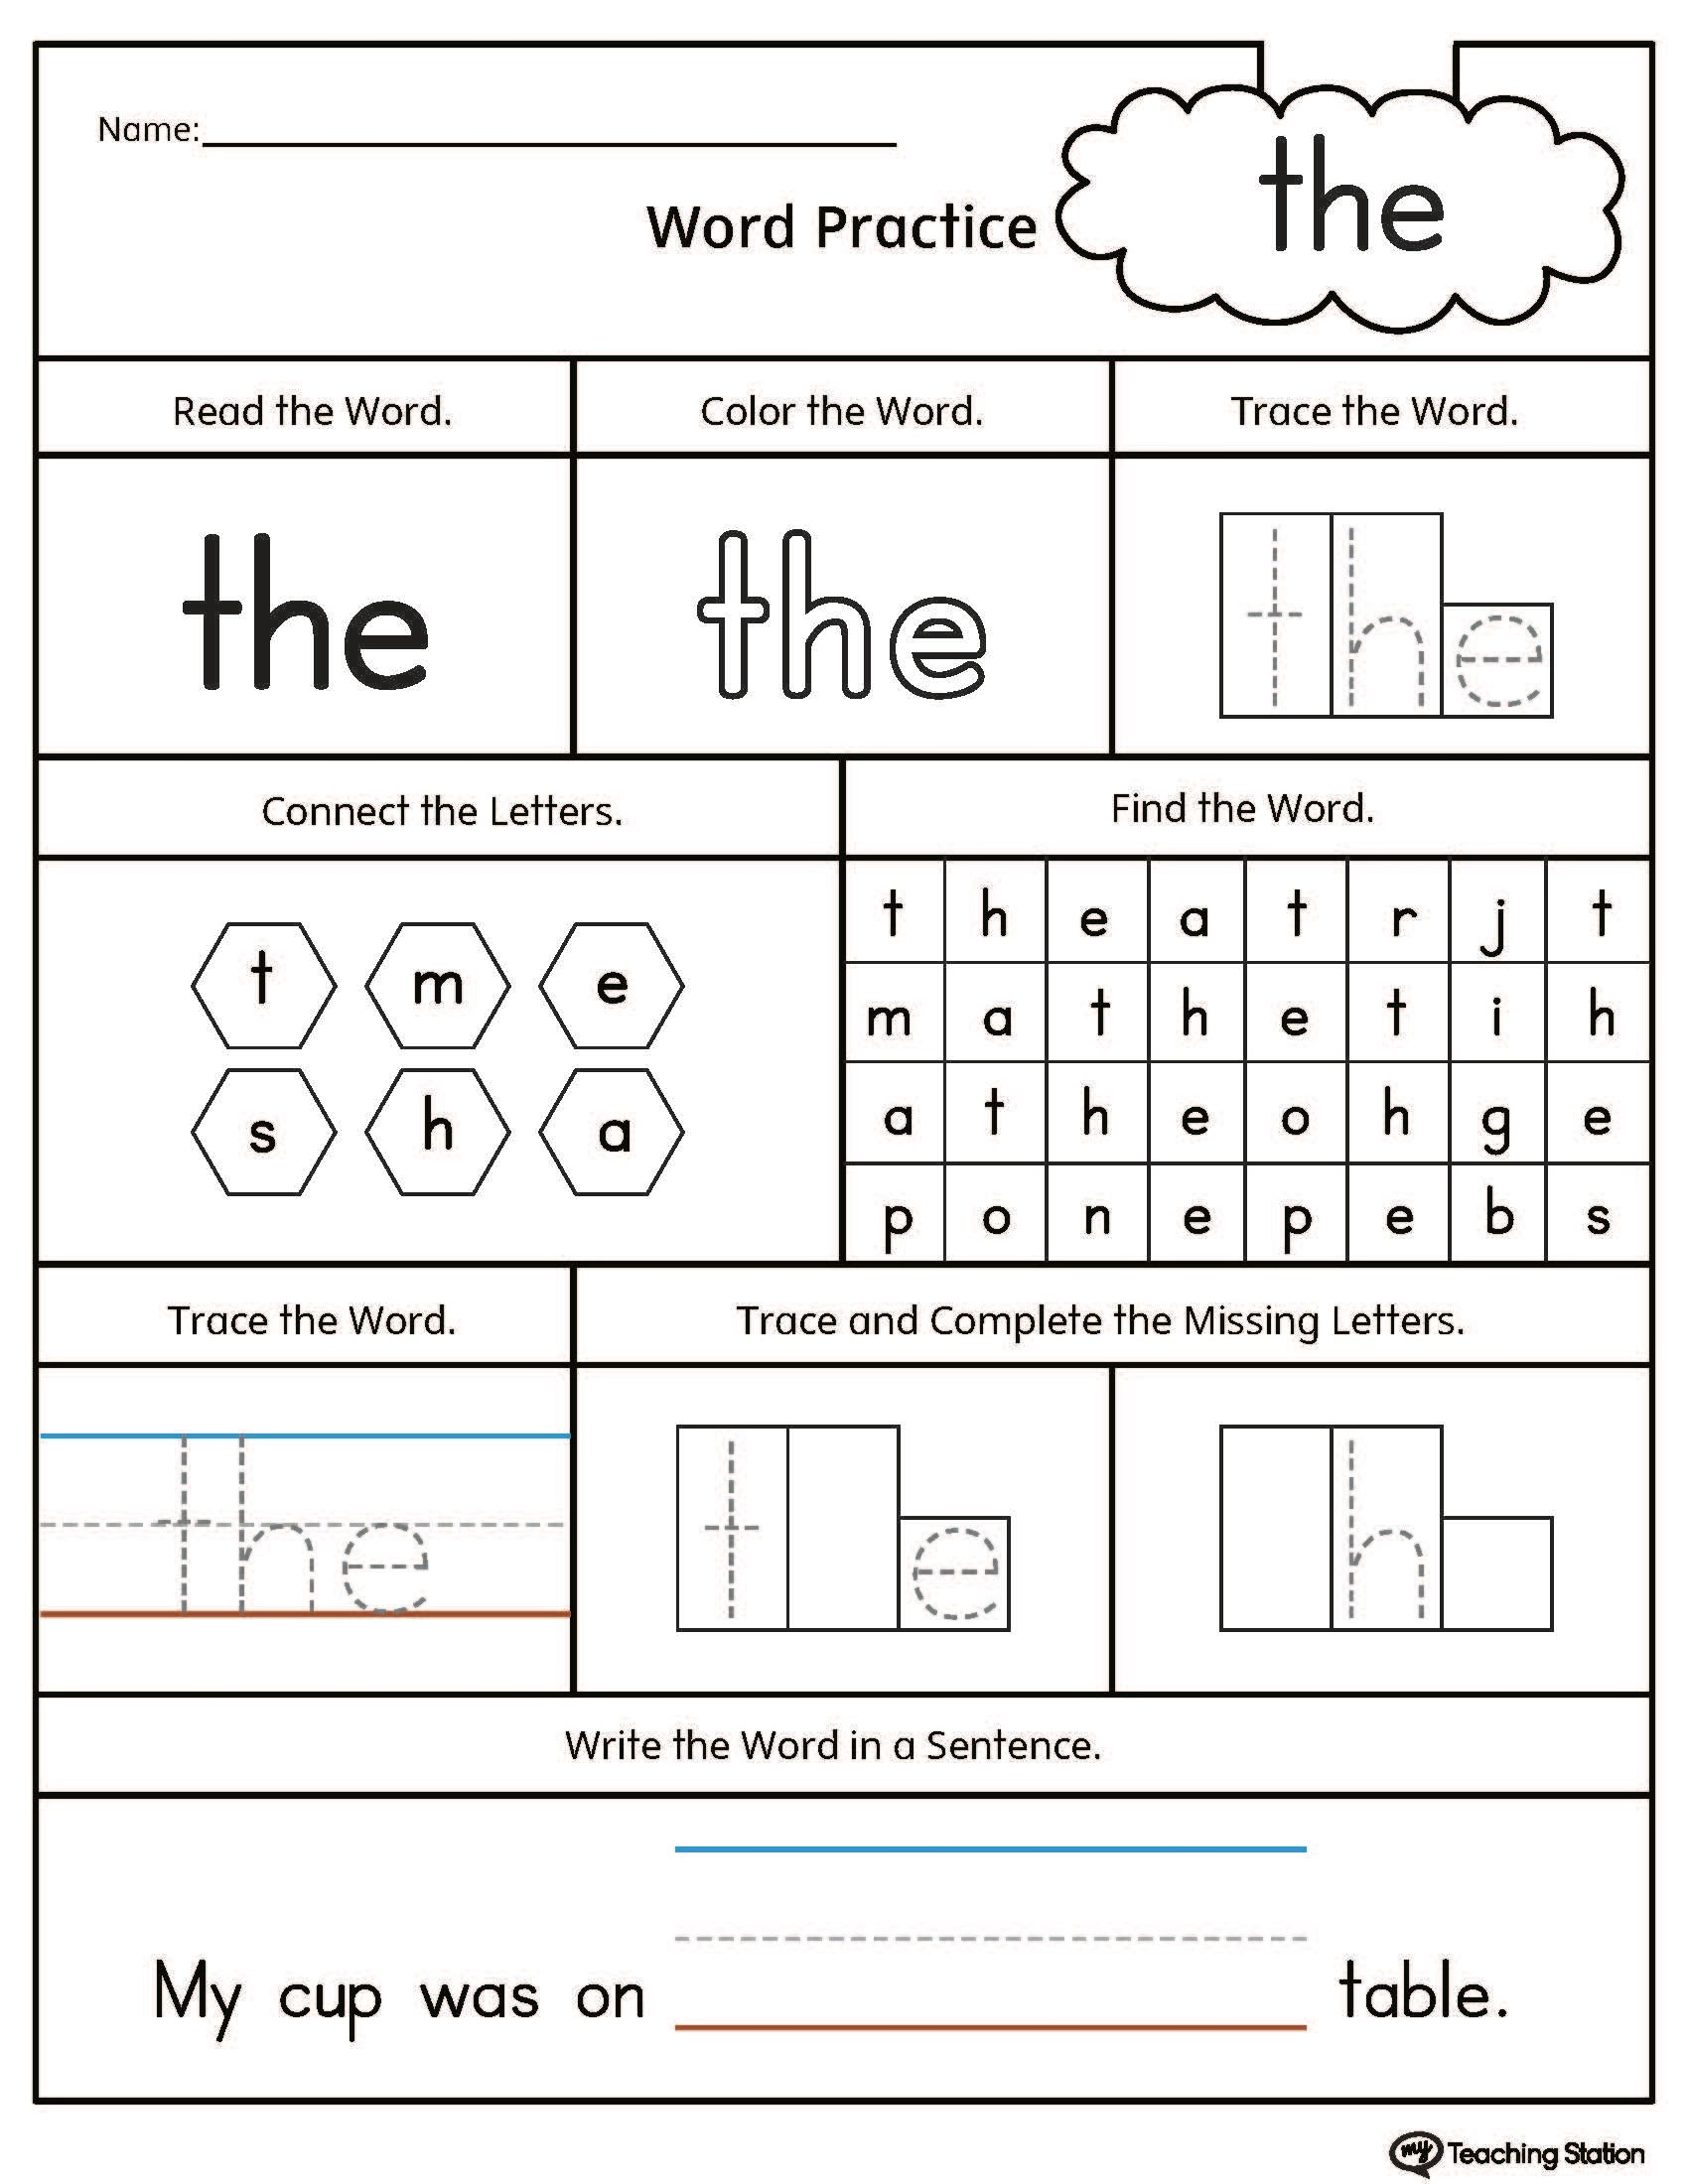 Free Worm Worksheet